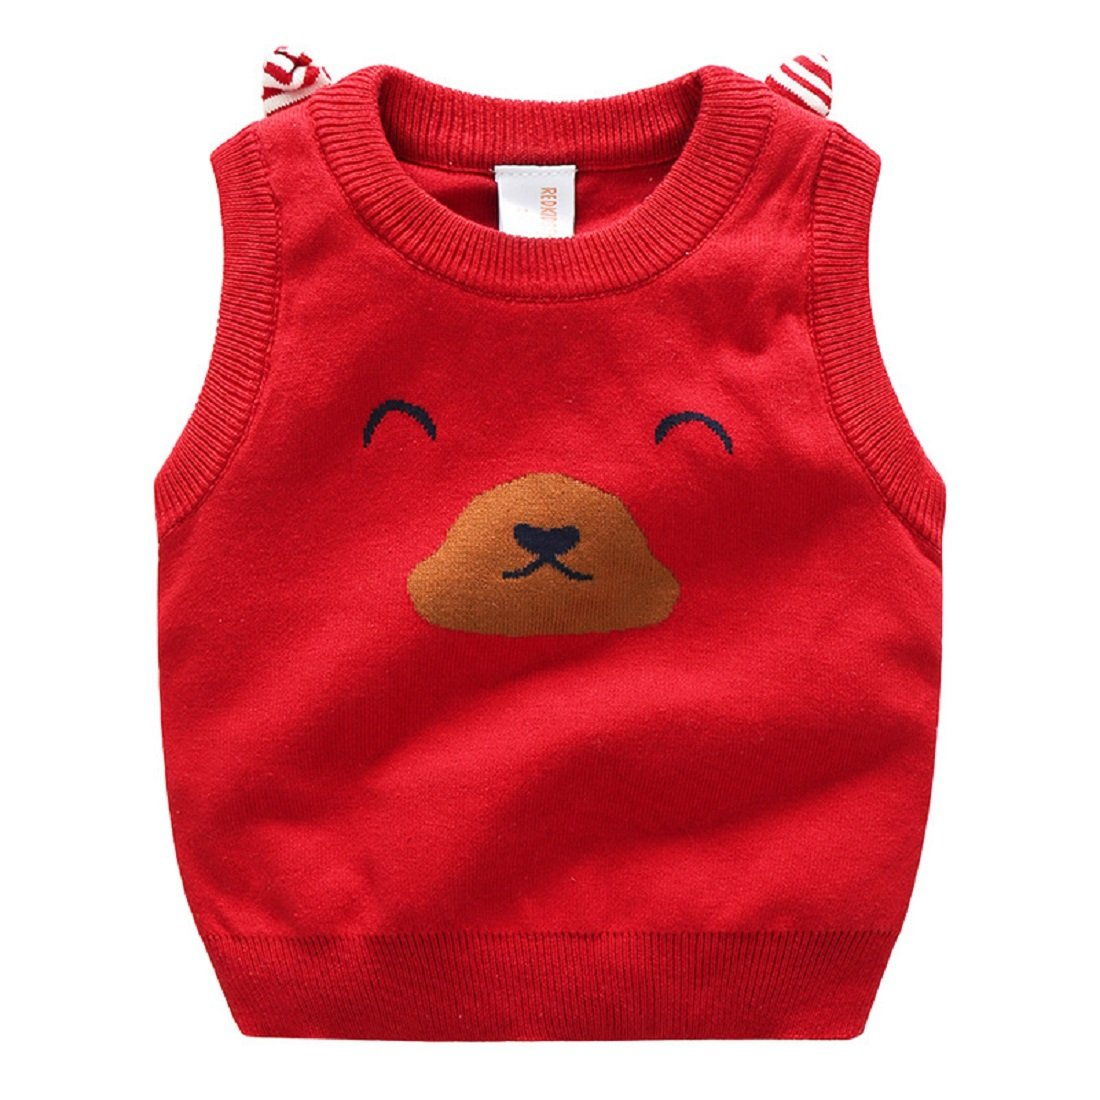 Goodluckclothes Kids Boys 100% Cotton Cartoon Logo Bear Knitting Vests Sweaters 2-10Years